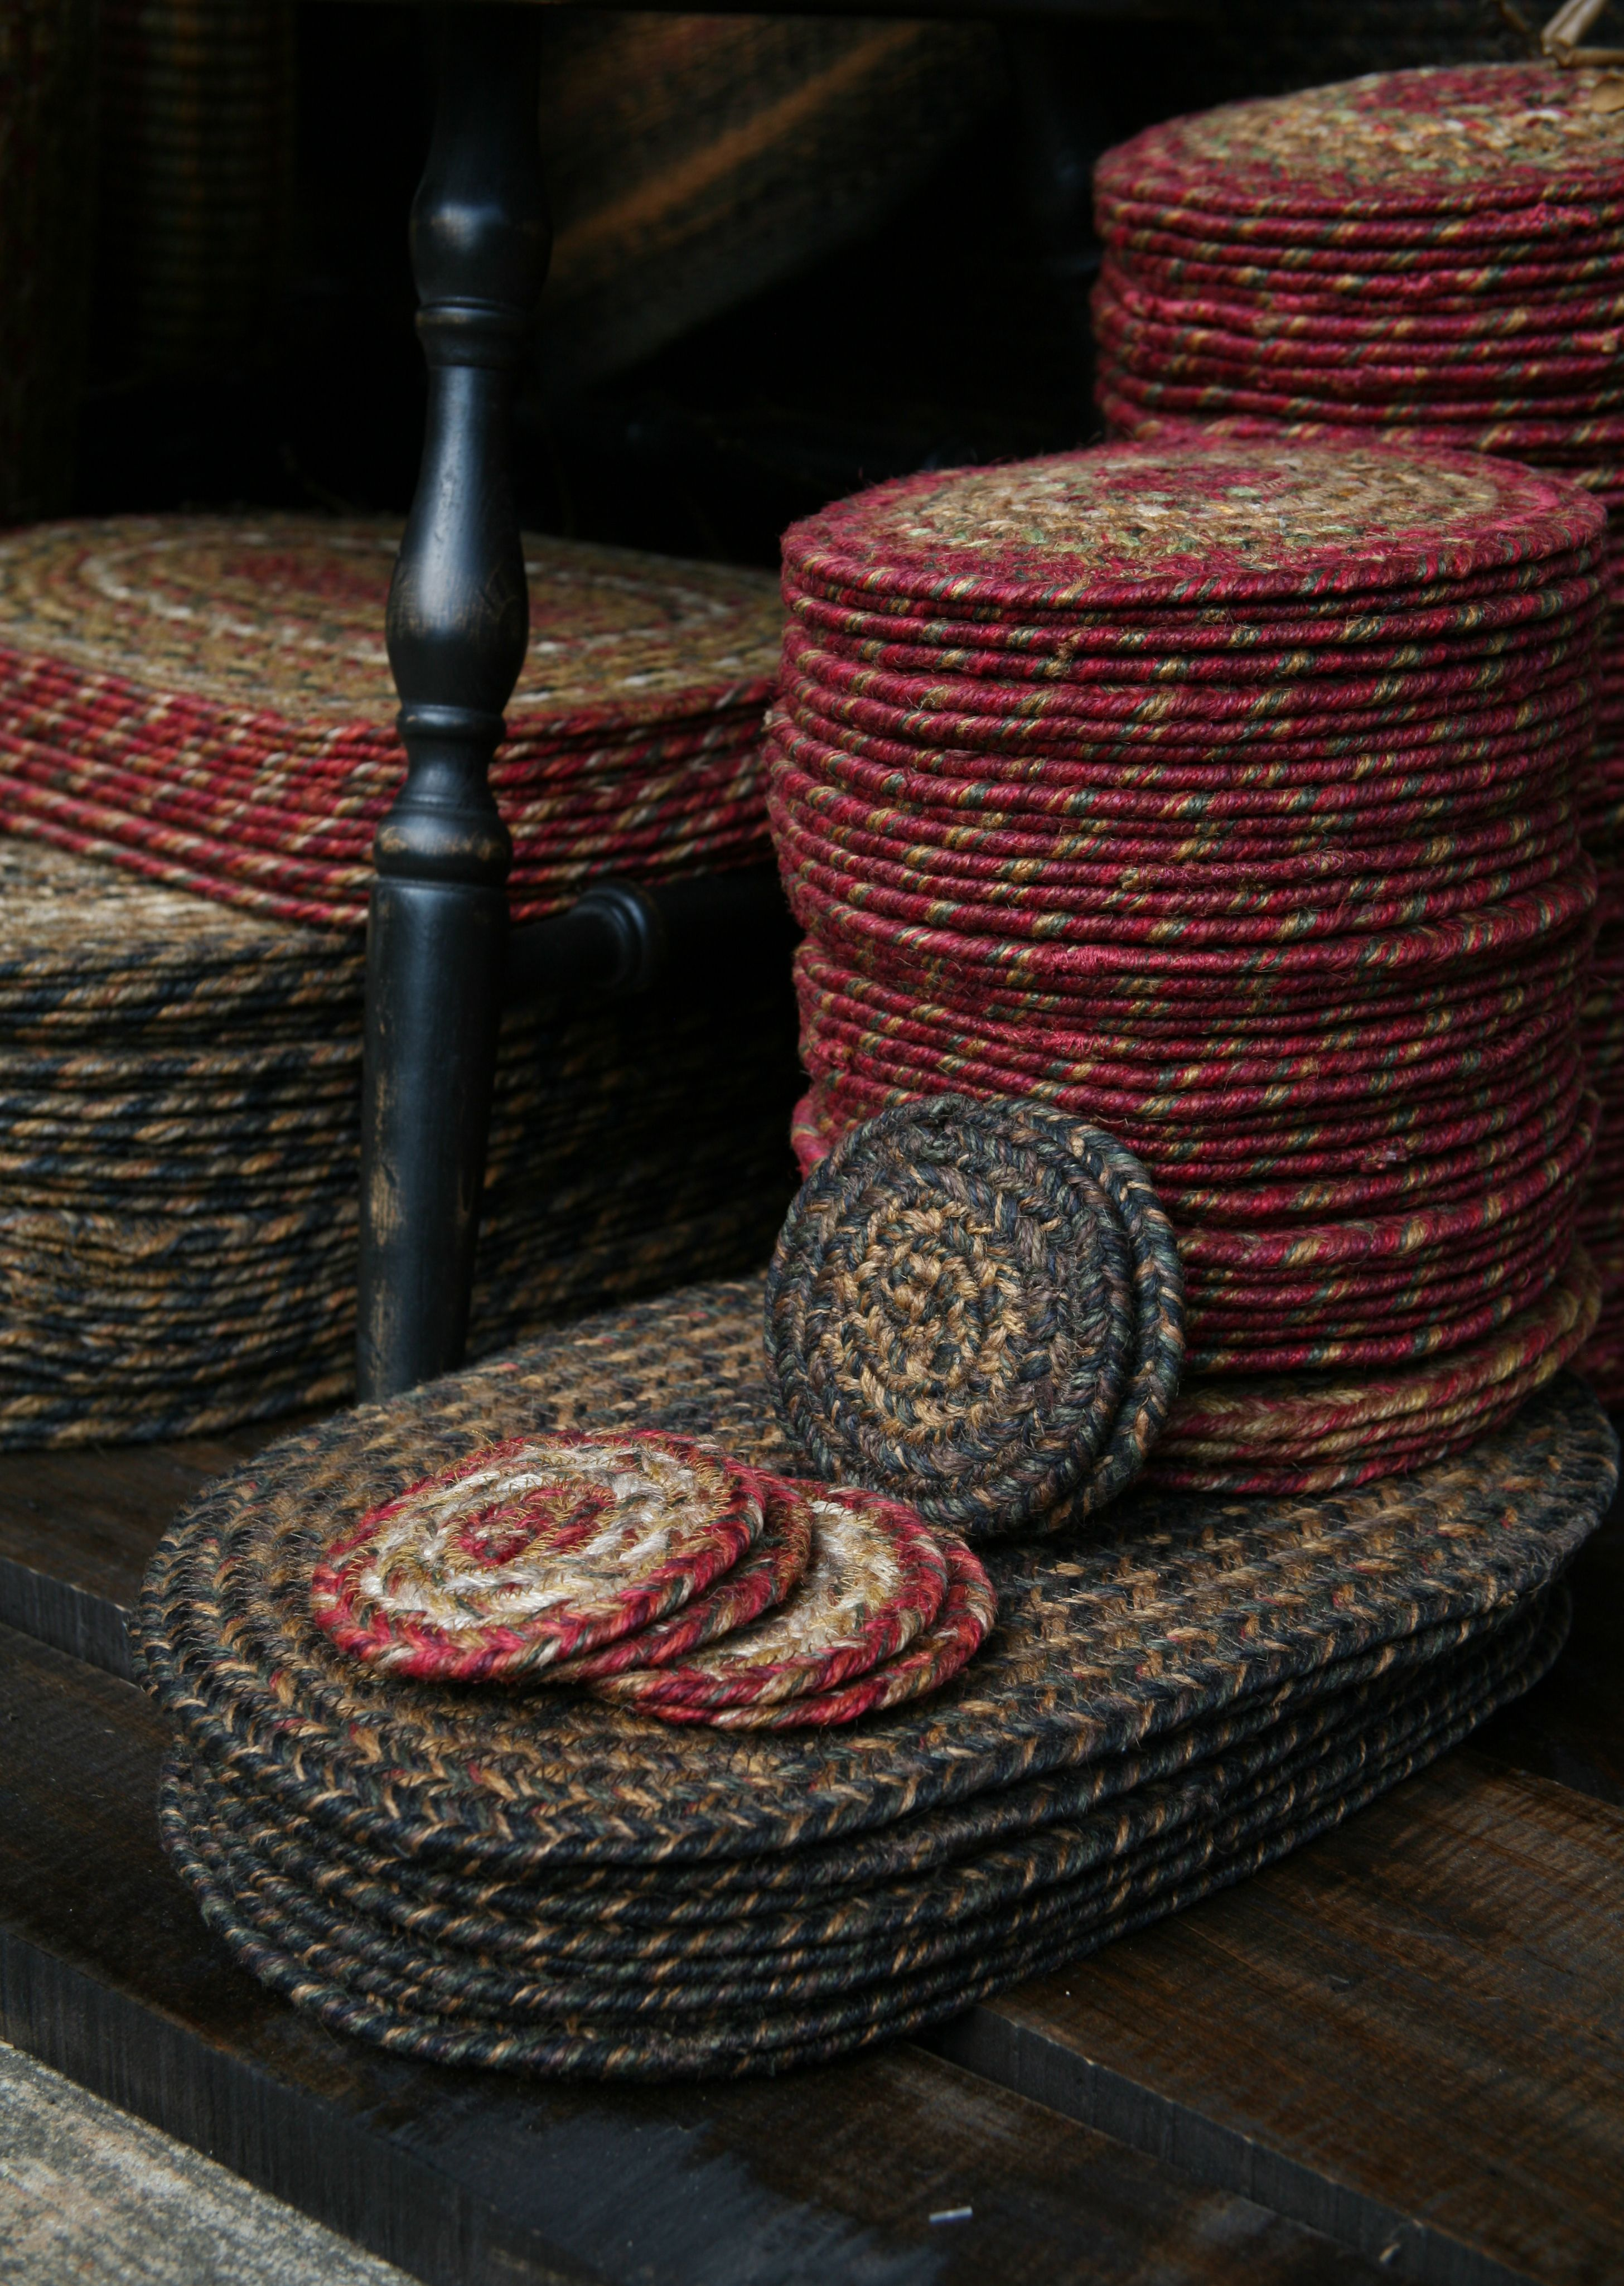 Braided Jute Coasters Trivets Place Mats And Table Runners Are A Great Economical Way To Change Up Yo Primitive Tables Primitive Decorating Braided Jute Rug